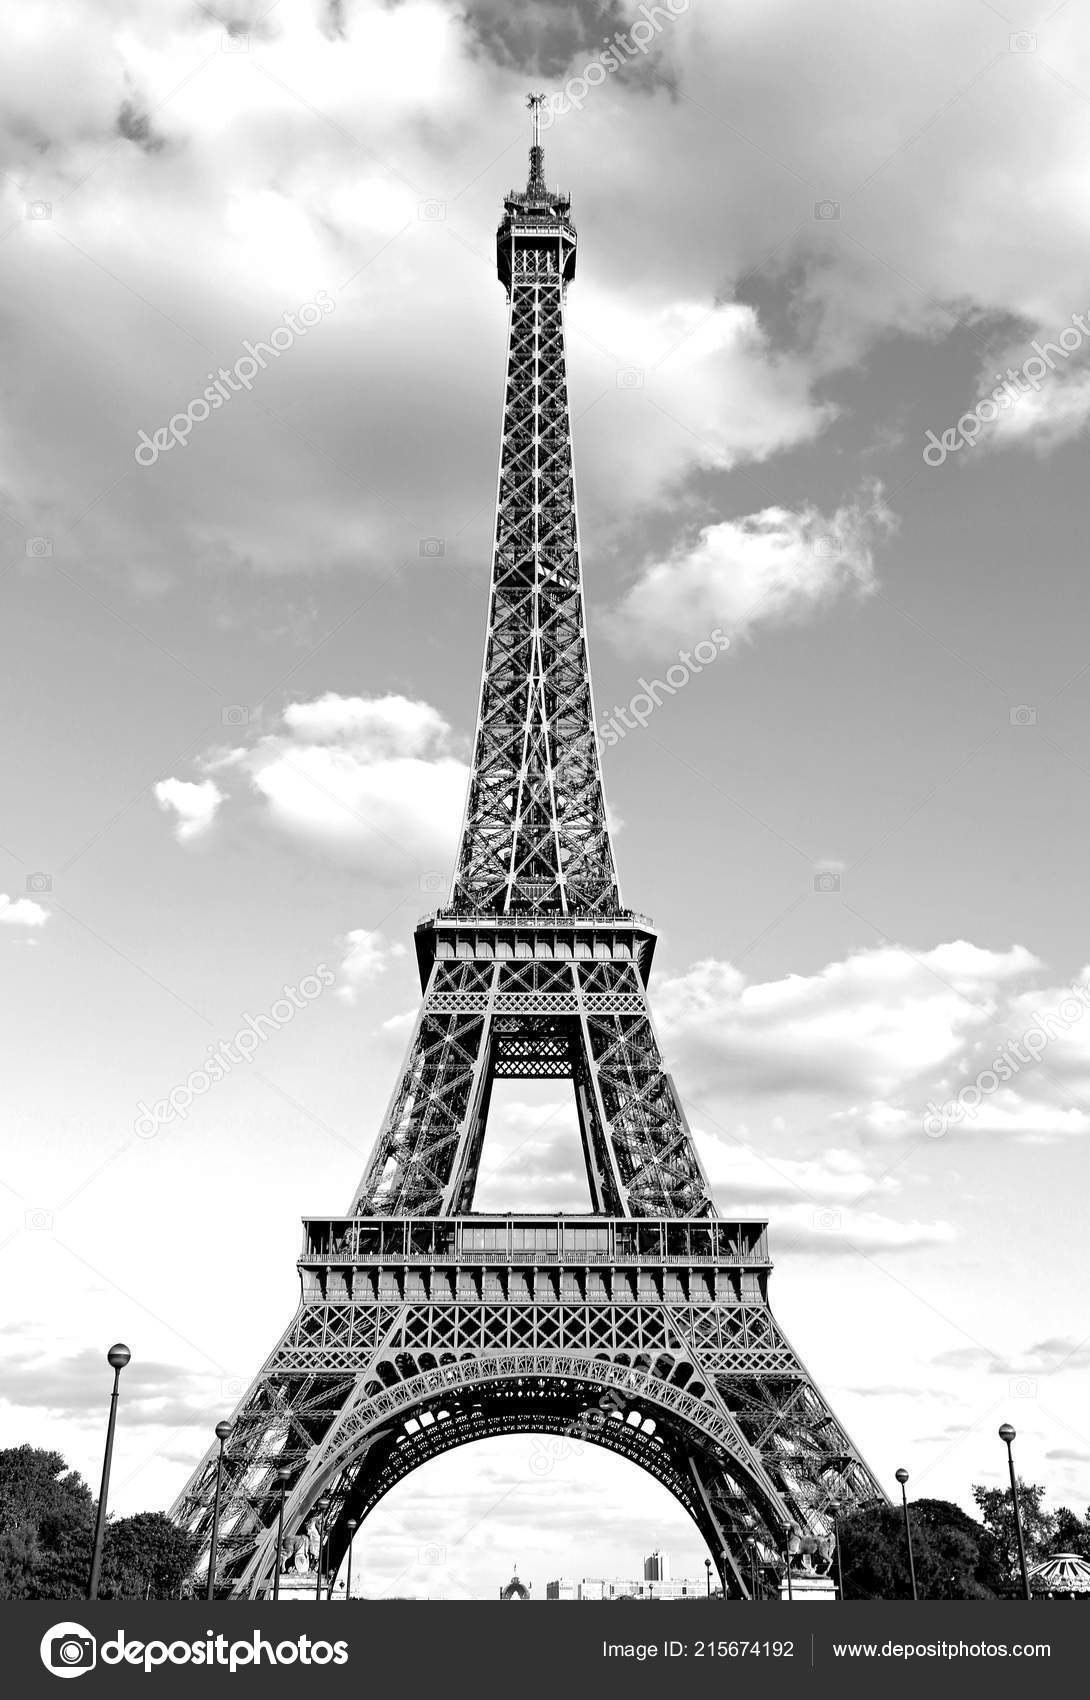 Pictures Black And White Eiffel Tower Big Eiffel Tower Black White Effect Paris Stock Photo C Chiccododifc 215674192